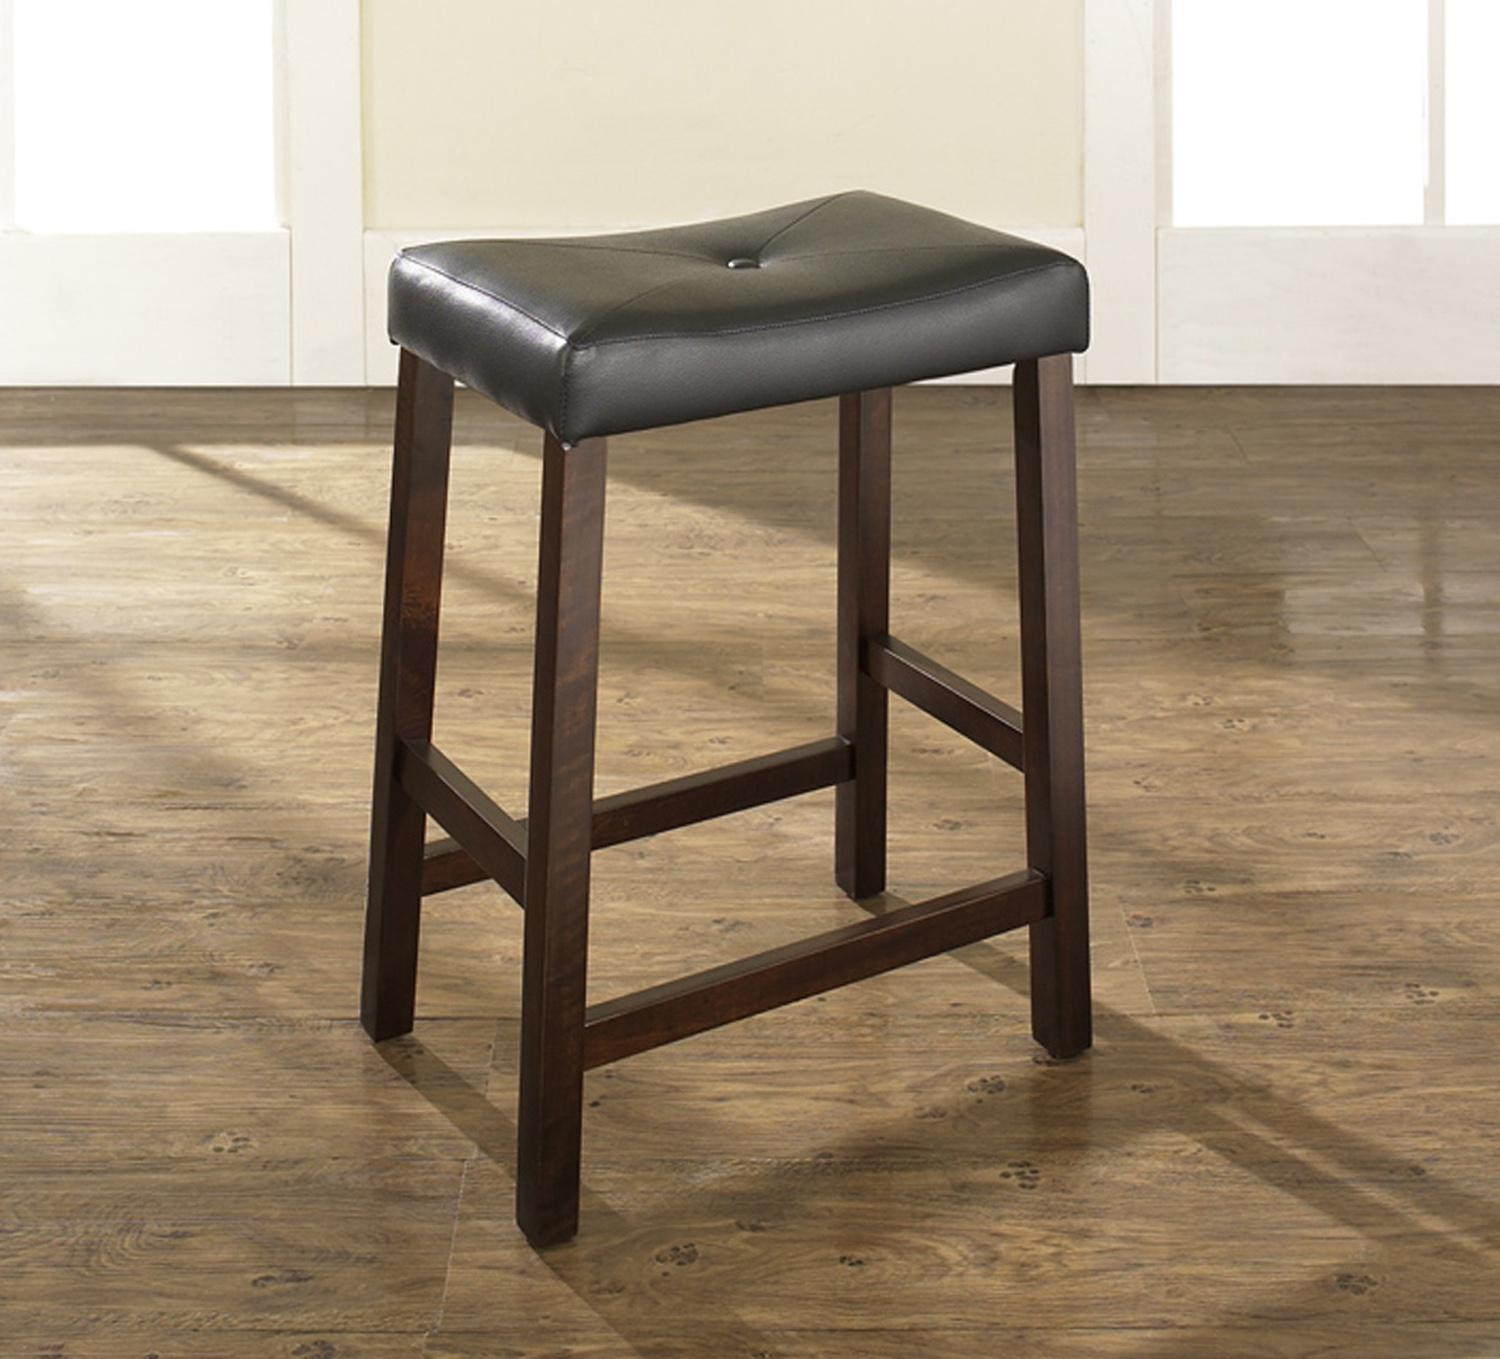 Upholstered Saddle Seat Bar Stool With 24 Inch Seat Height